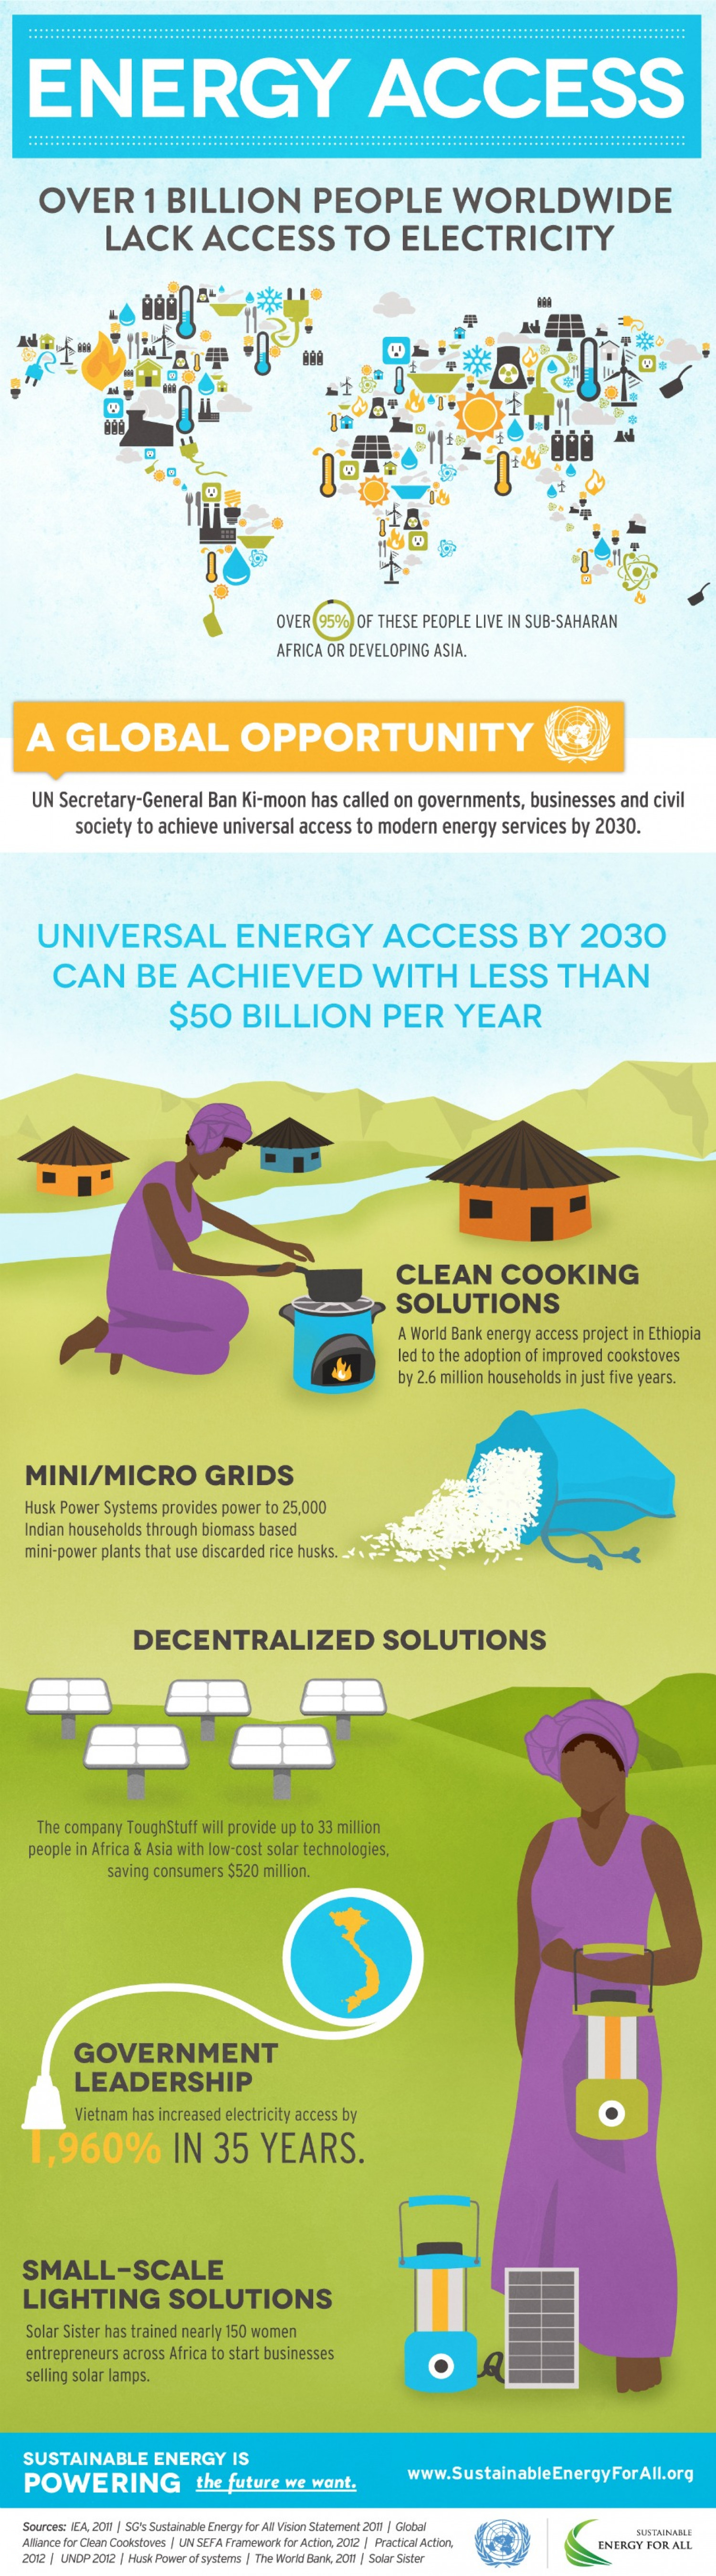 Energy Access Infographic